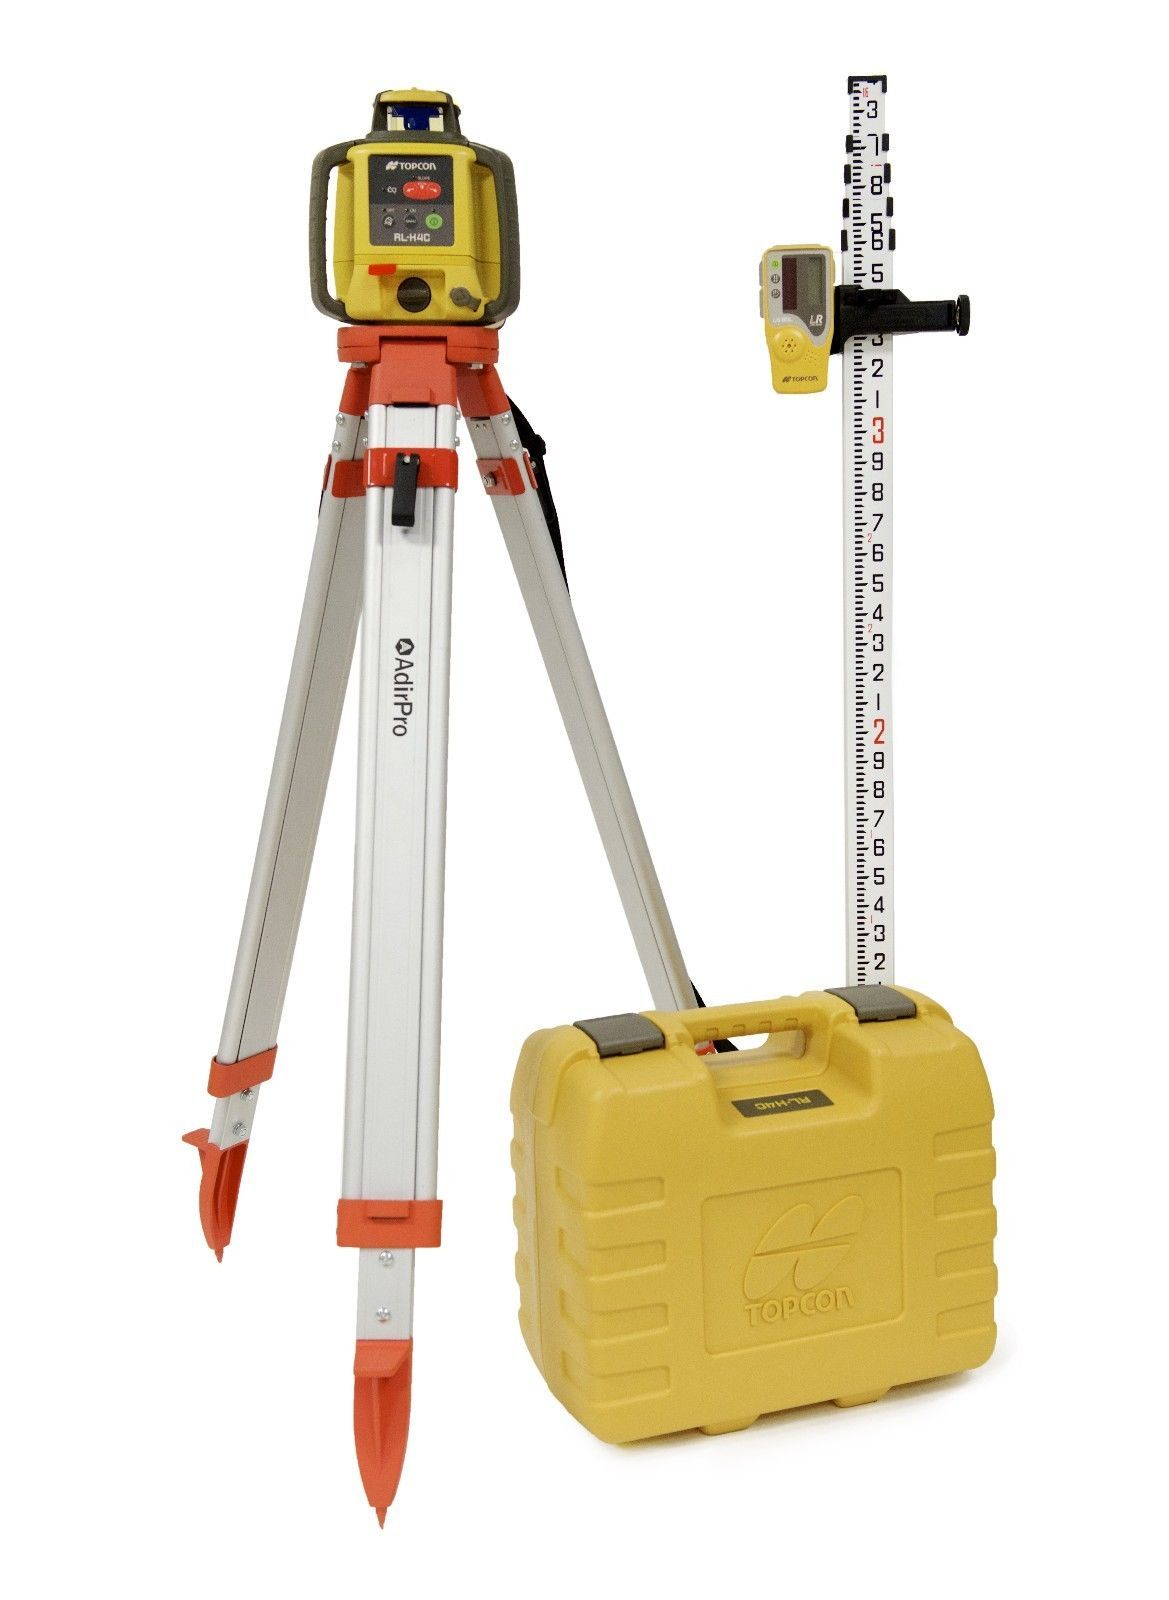 How To Use A Laser Level Detector No Doubt A Laser Level Detector Helps To Ensure The Speed Accuracy And Quality Of An Alignm Laser Levels Laser Flat Head